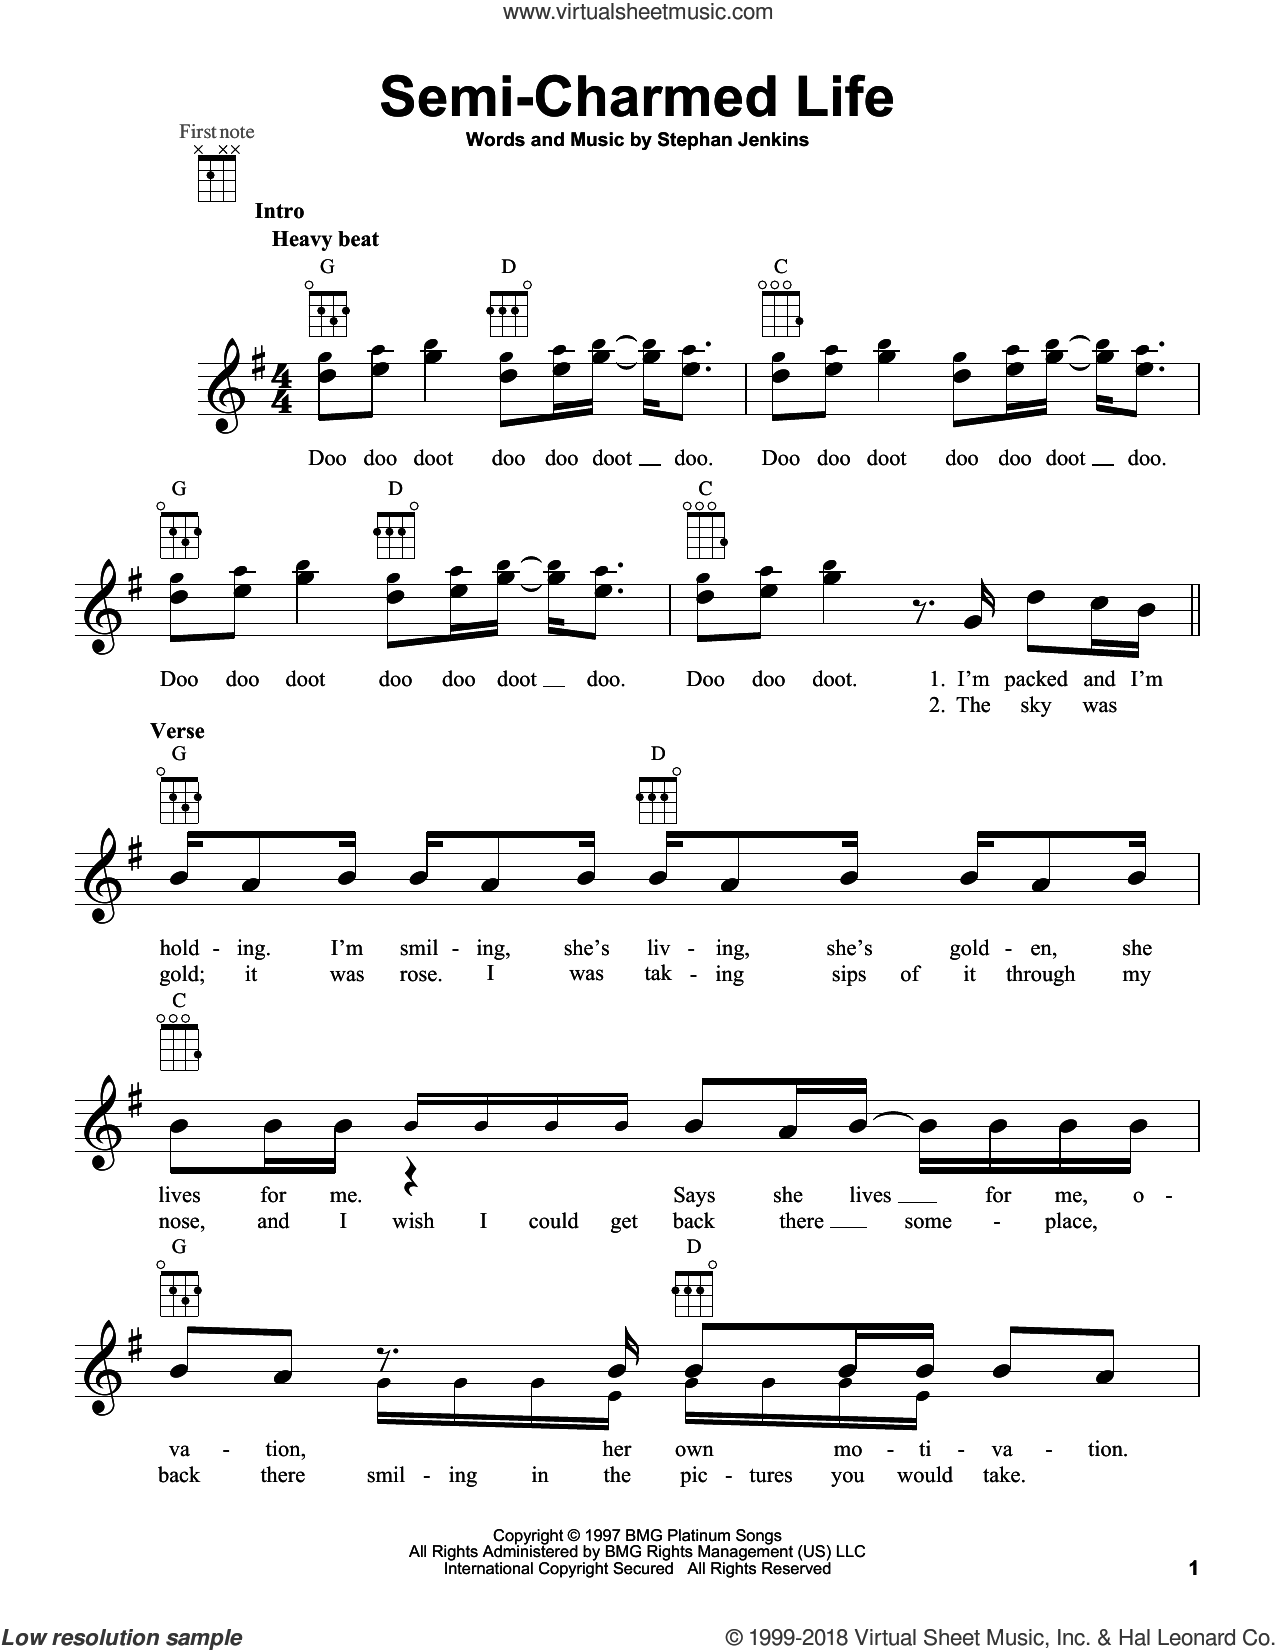 Semi-Charmed Life sheet music for ukulele by Third Eye Blind. Score Image Preview.